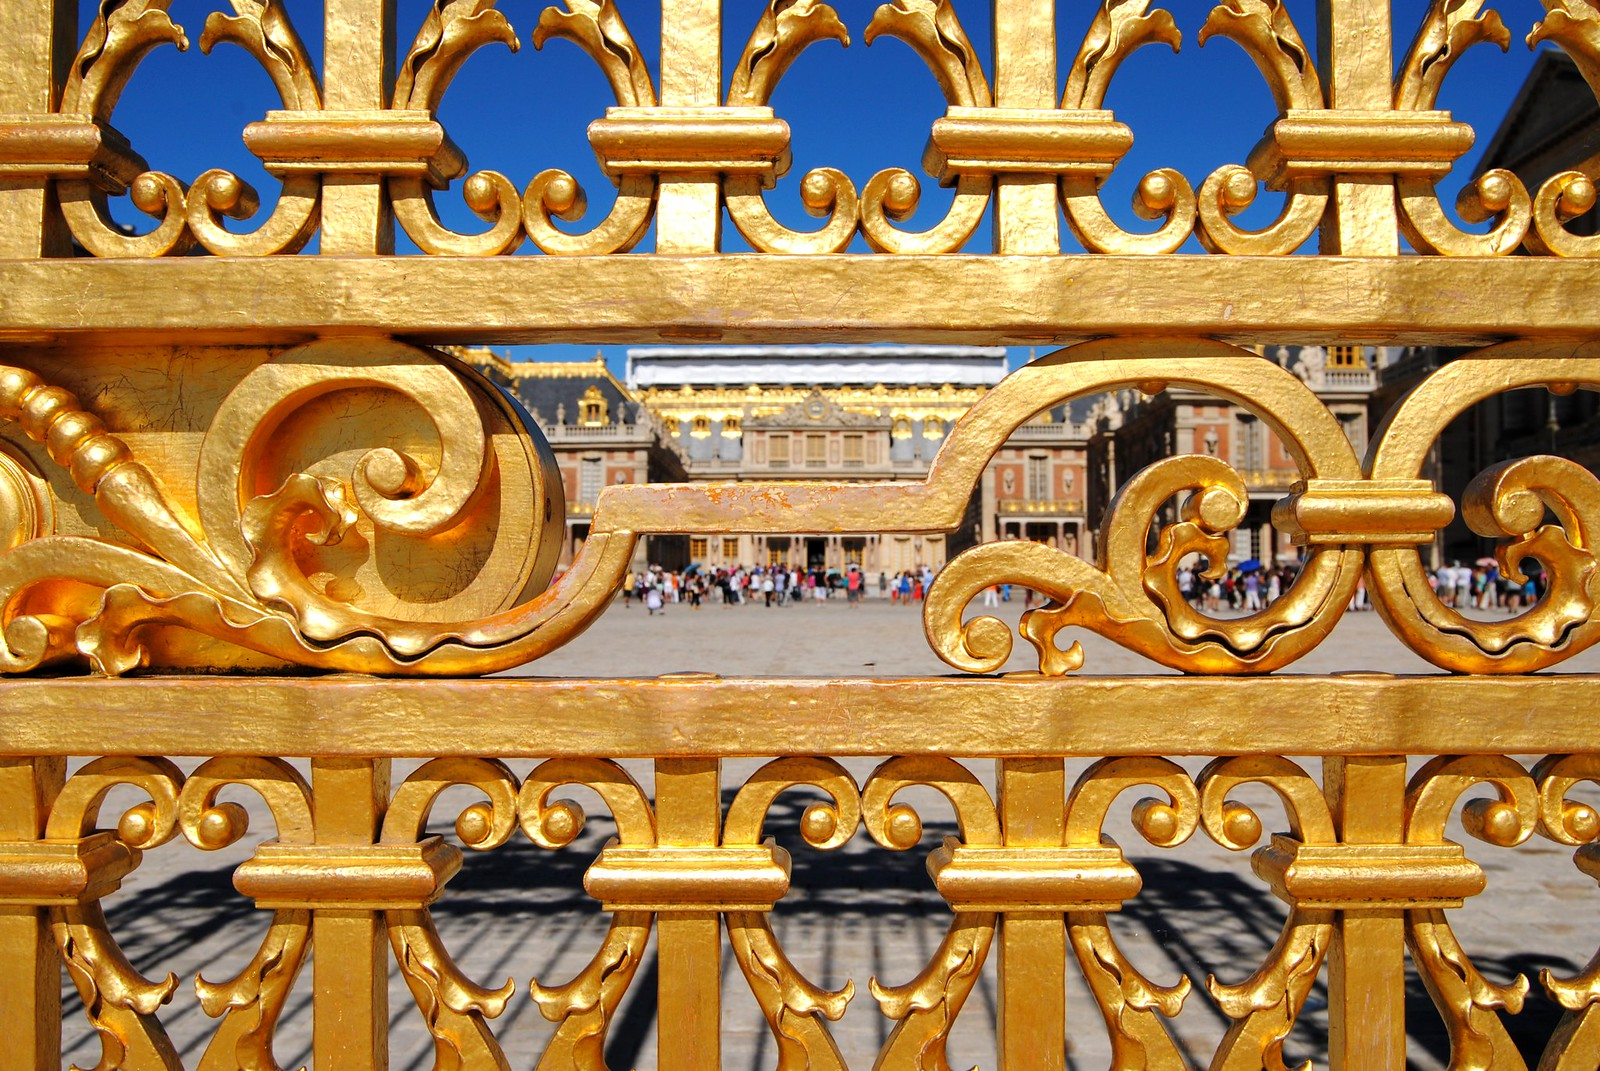 The golden gate in front of the Chateau de Versailles